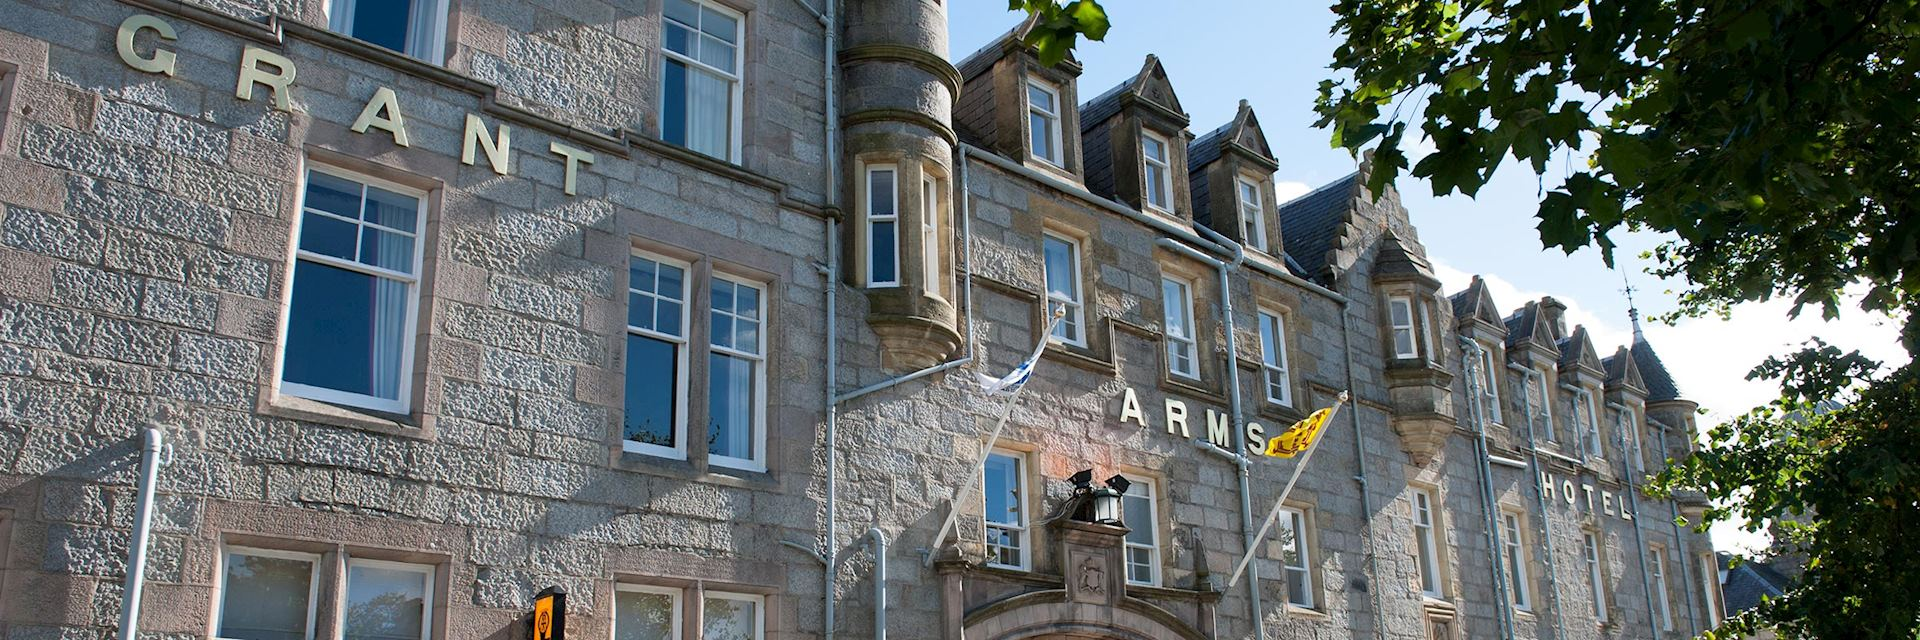 The Grant Arms Hotel, Grantown on Spey